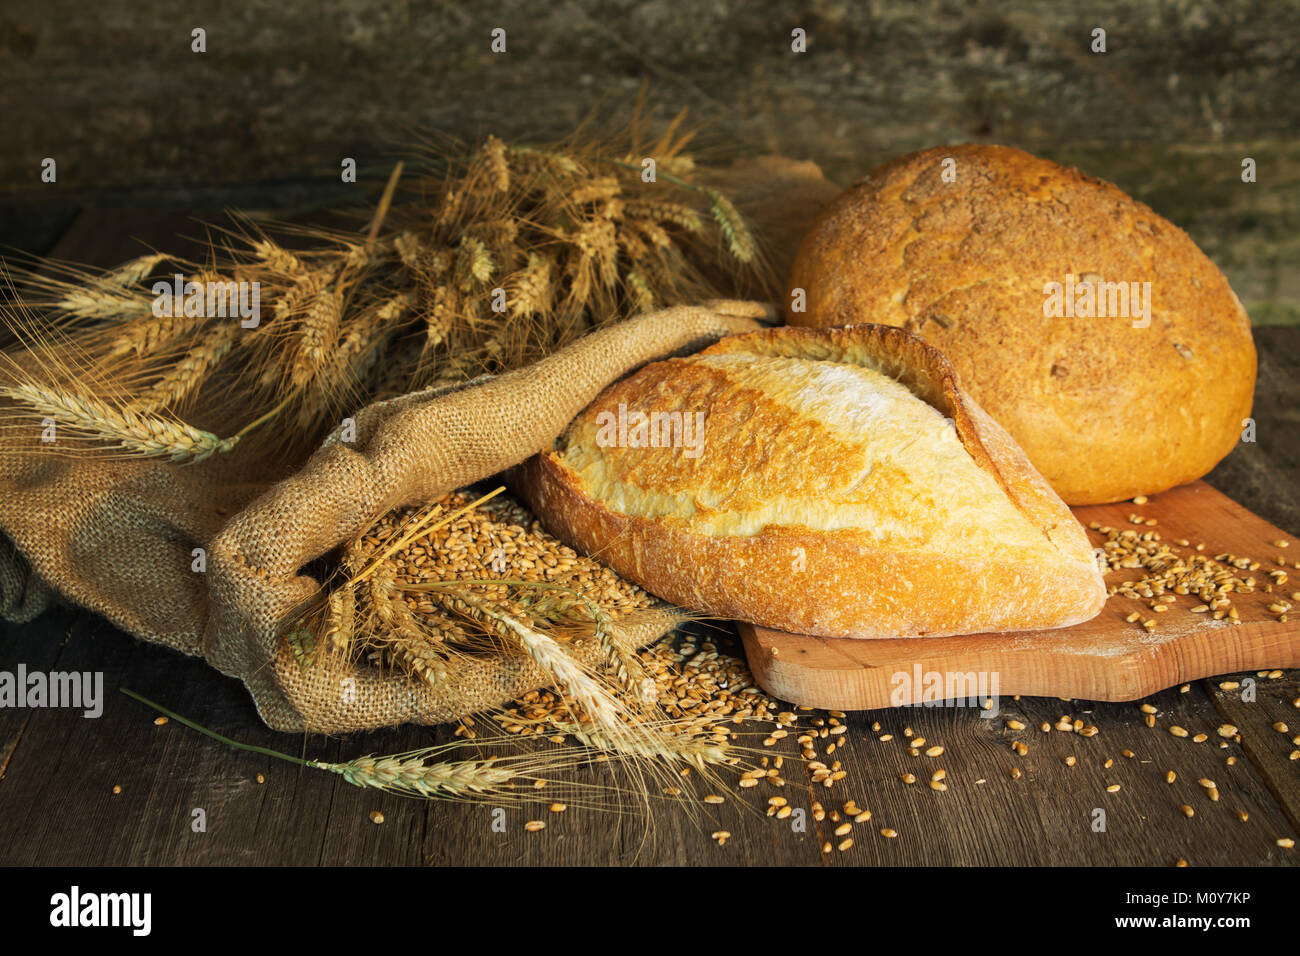 bread, wheat, ears of corn on a wooden background on coarse fabric - Stock Image